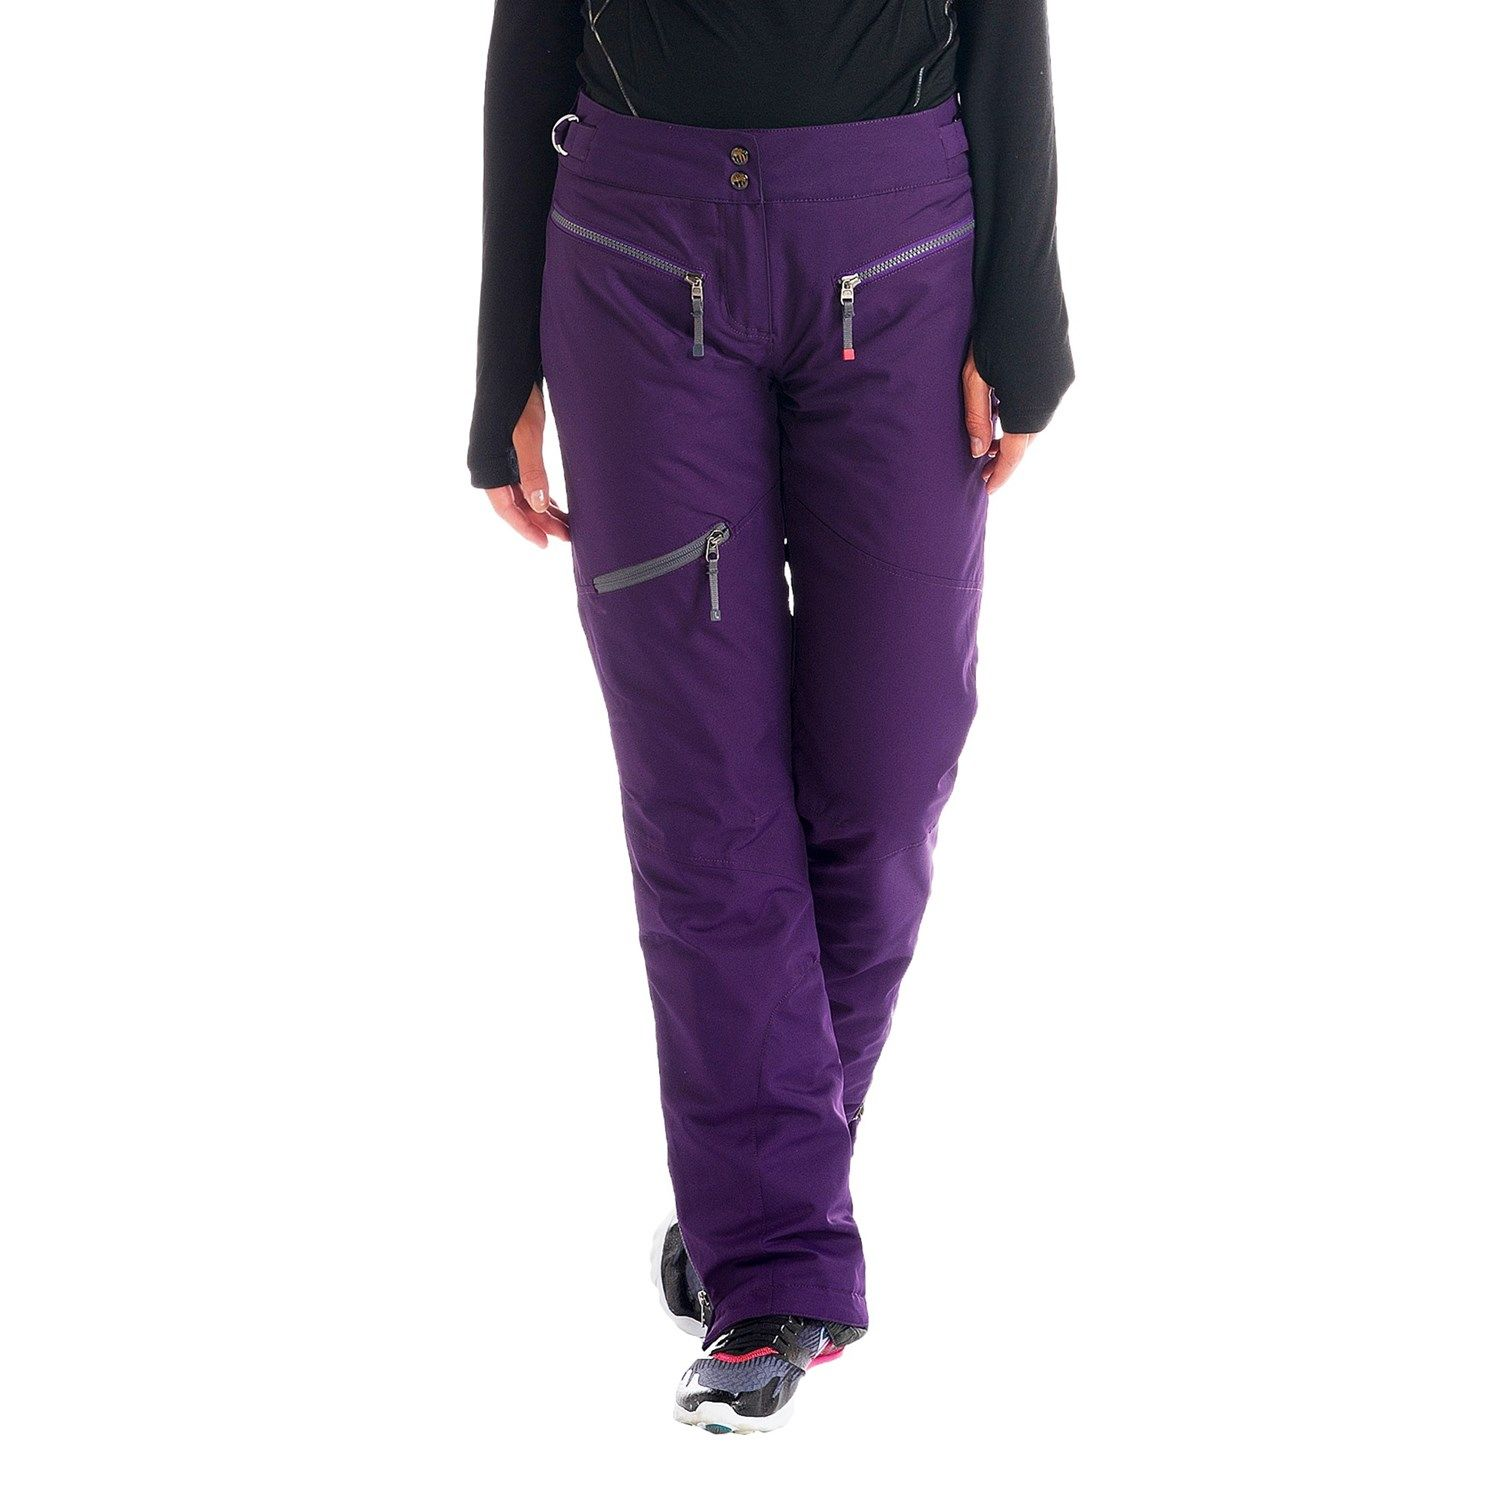 Lole Carly Snowsport Pants Insulated For Women Pants Pants For Women Lole